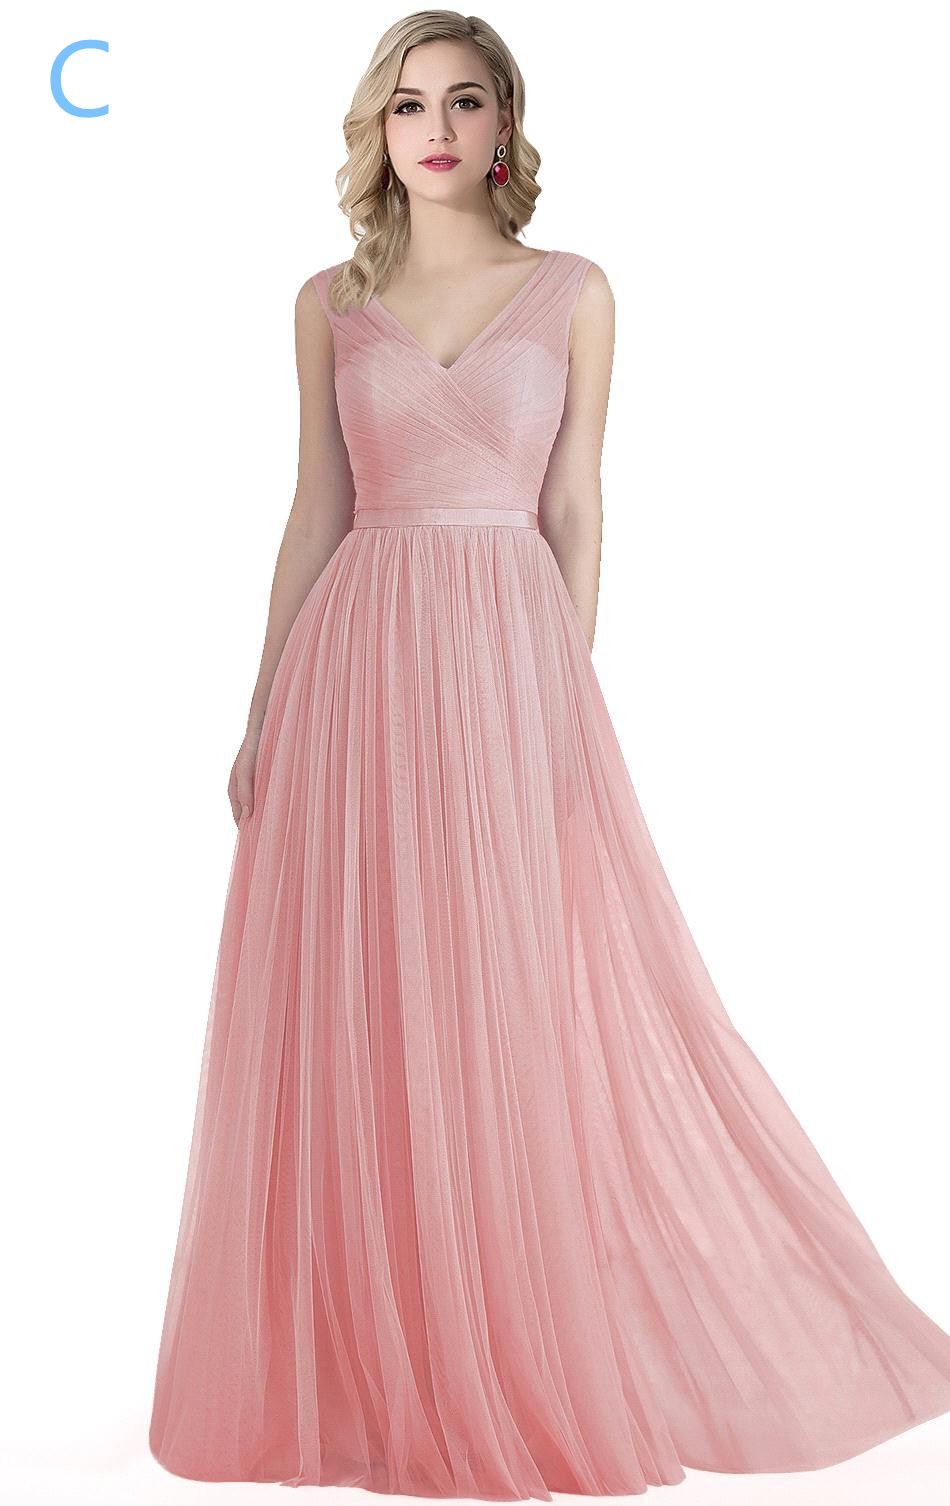 Shop our stunning new arrival bridesmaid dresses collection offered at an affordable price today! Surplice Tank Long Chiffon Bridesmaid Dress. F 45 colors Added to your favorites! NEW. White by Vera Wang. Crepe and Tulle T-Back Bridesmaid Dress. VW